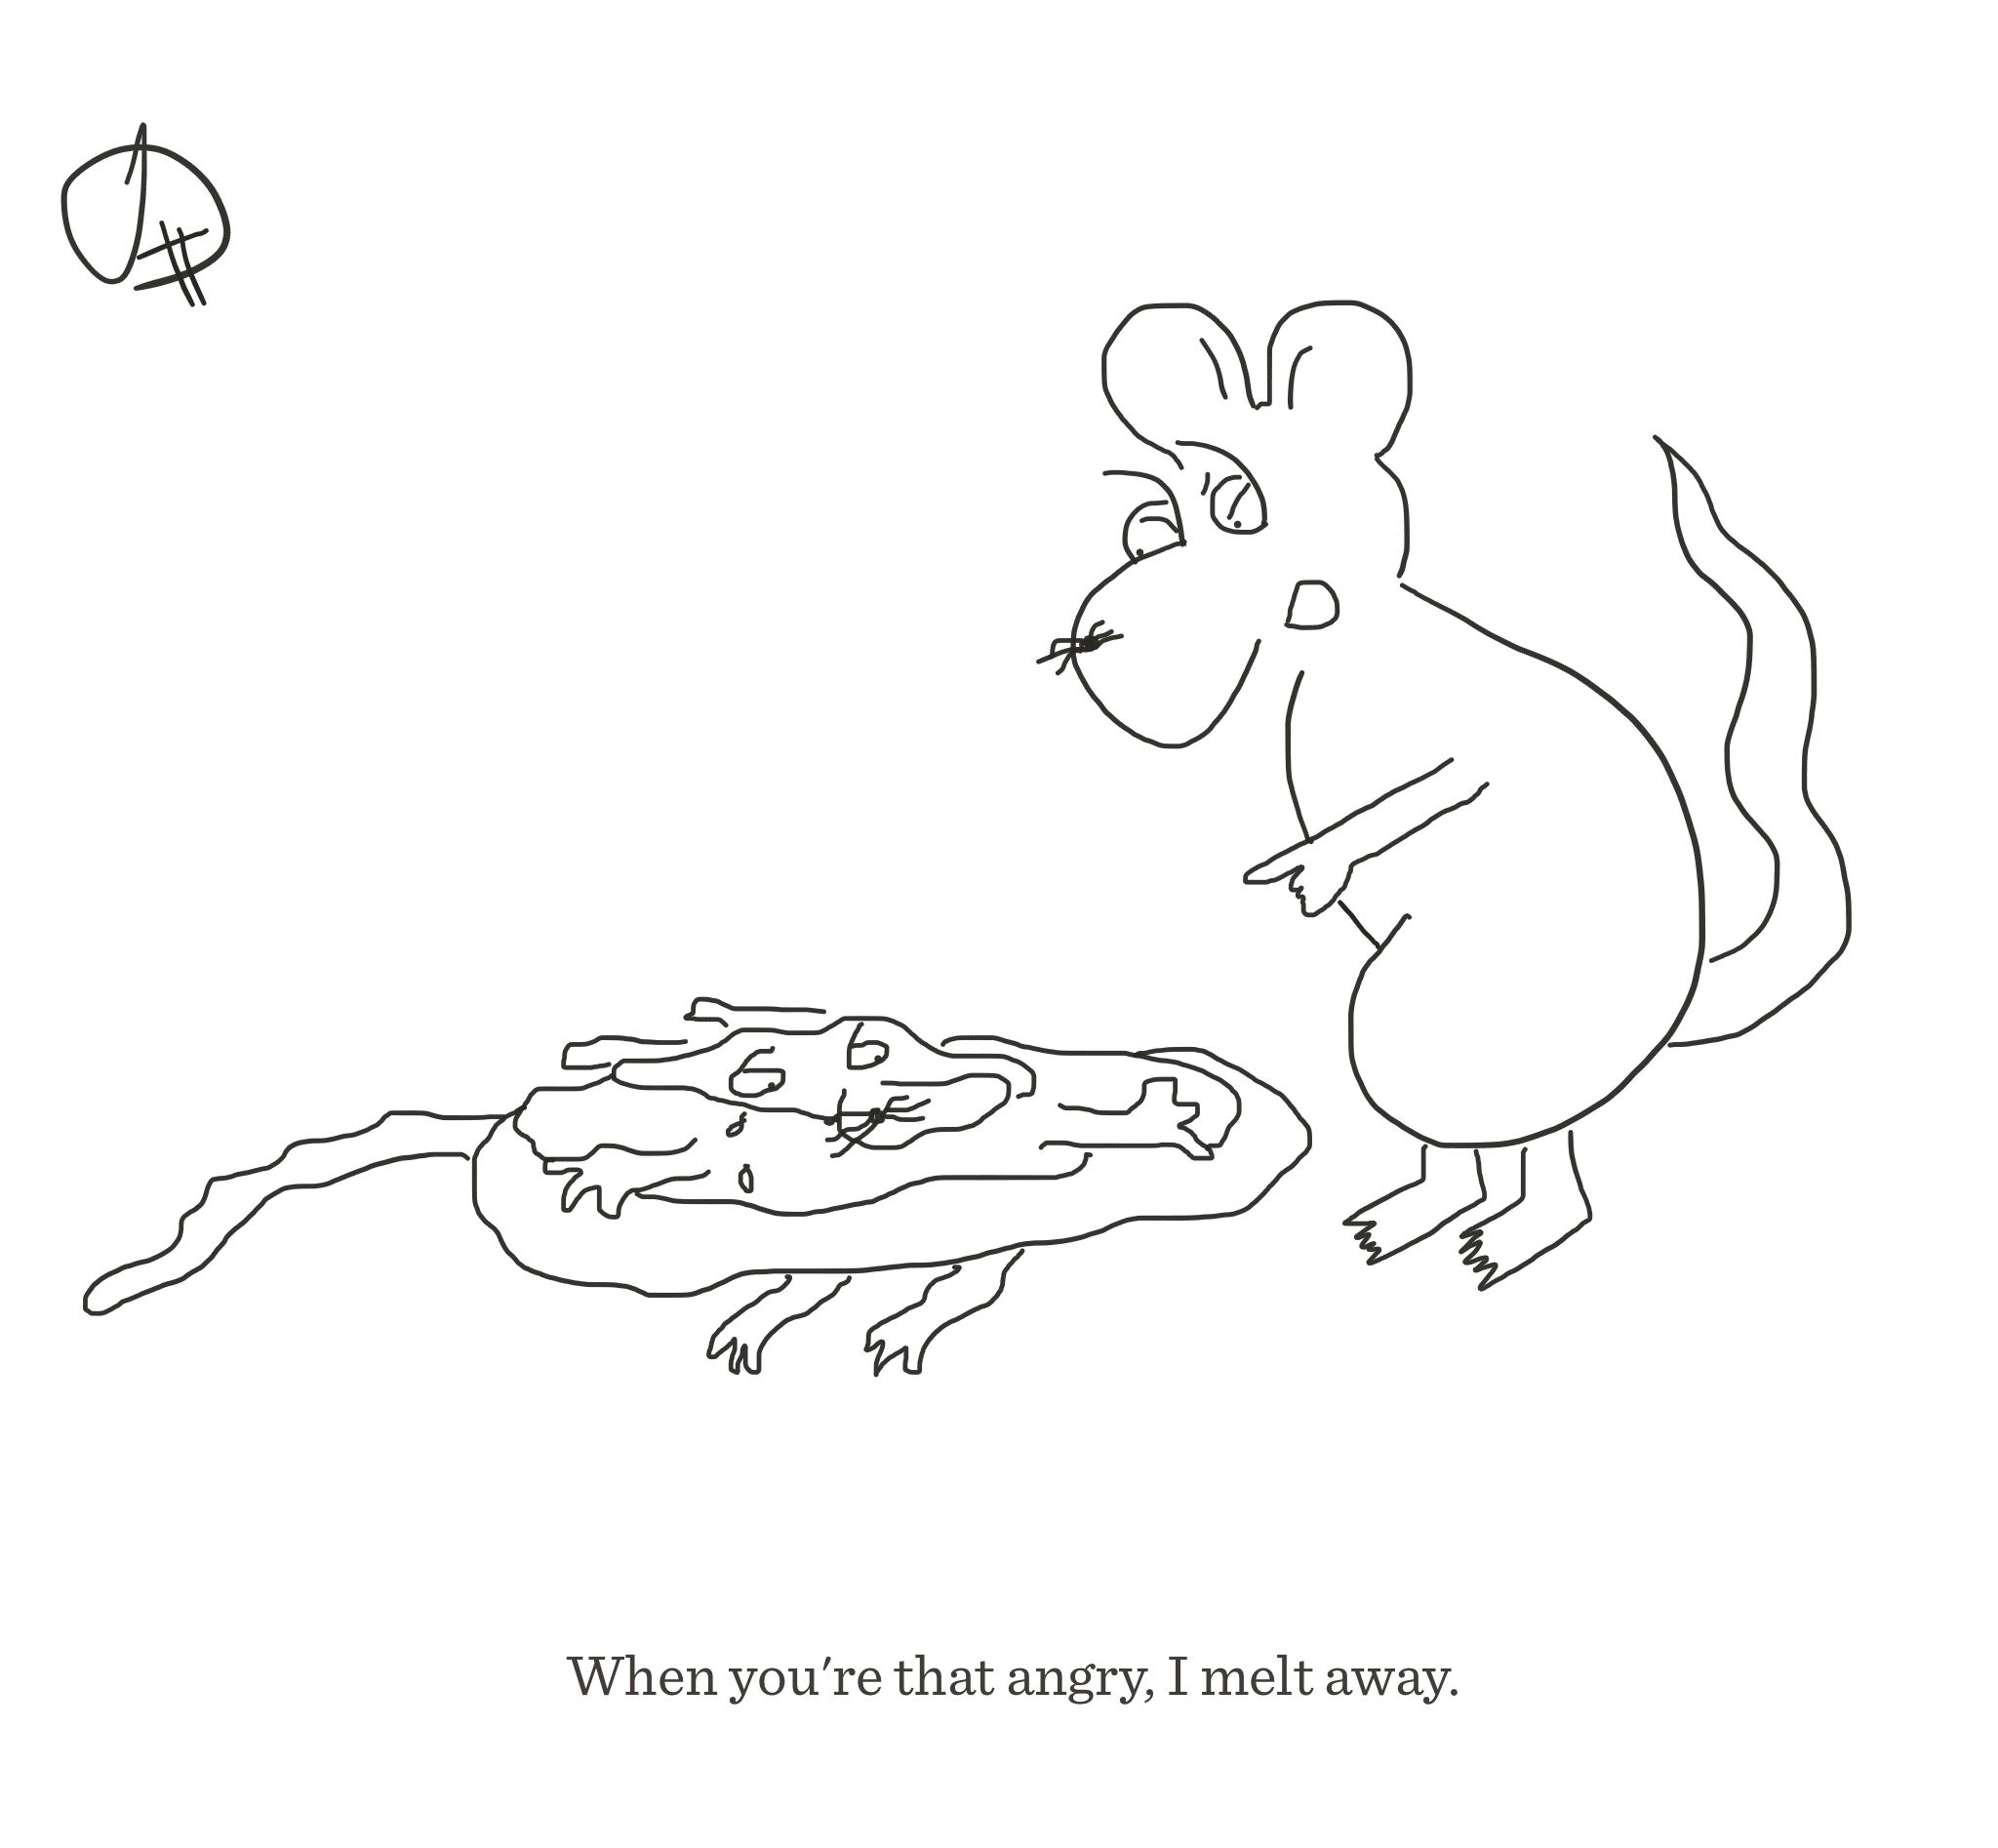 Melting away, The Happy Rat cartoon